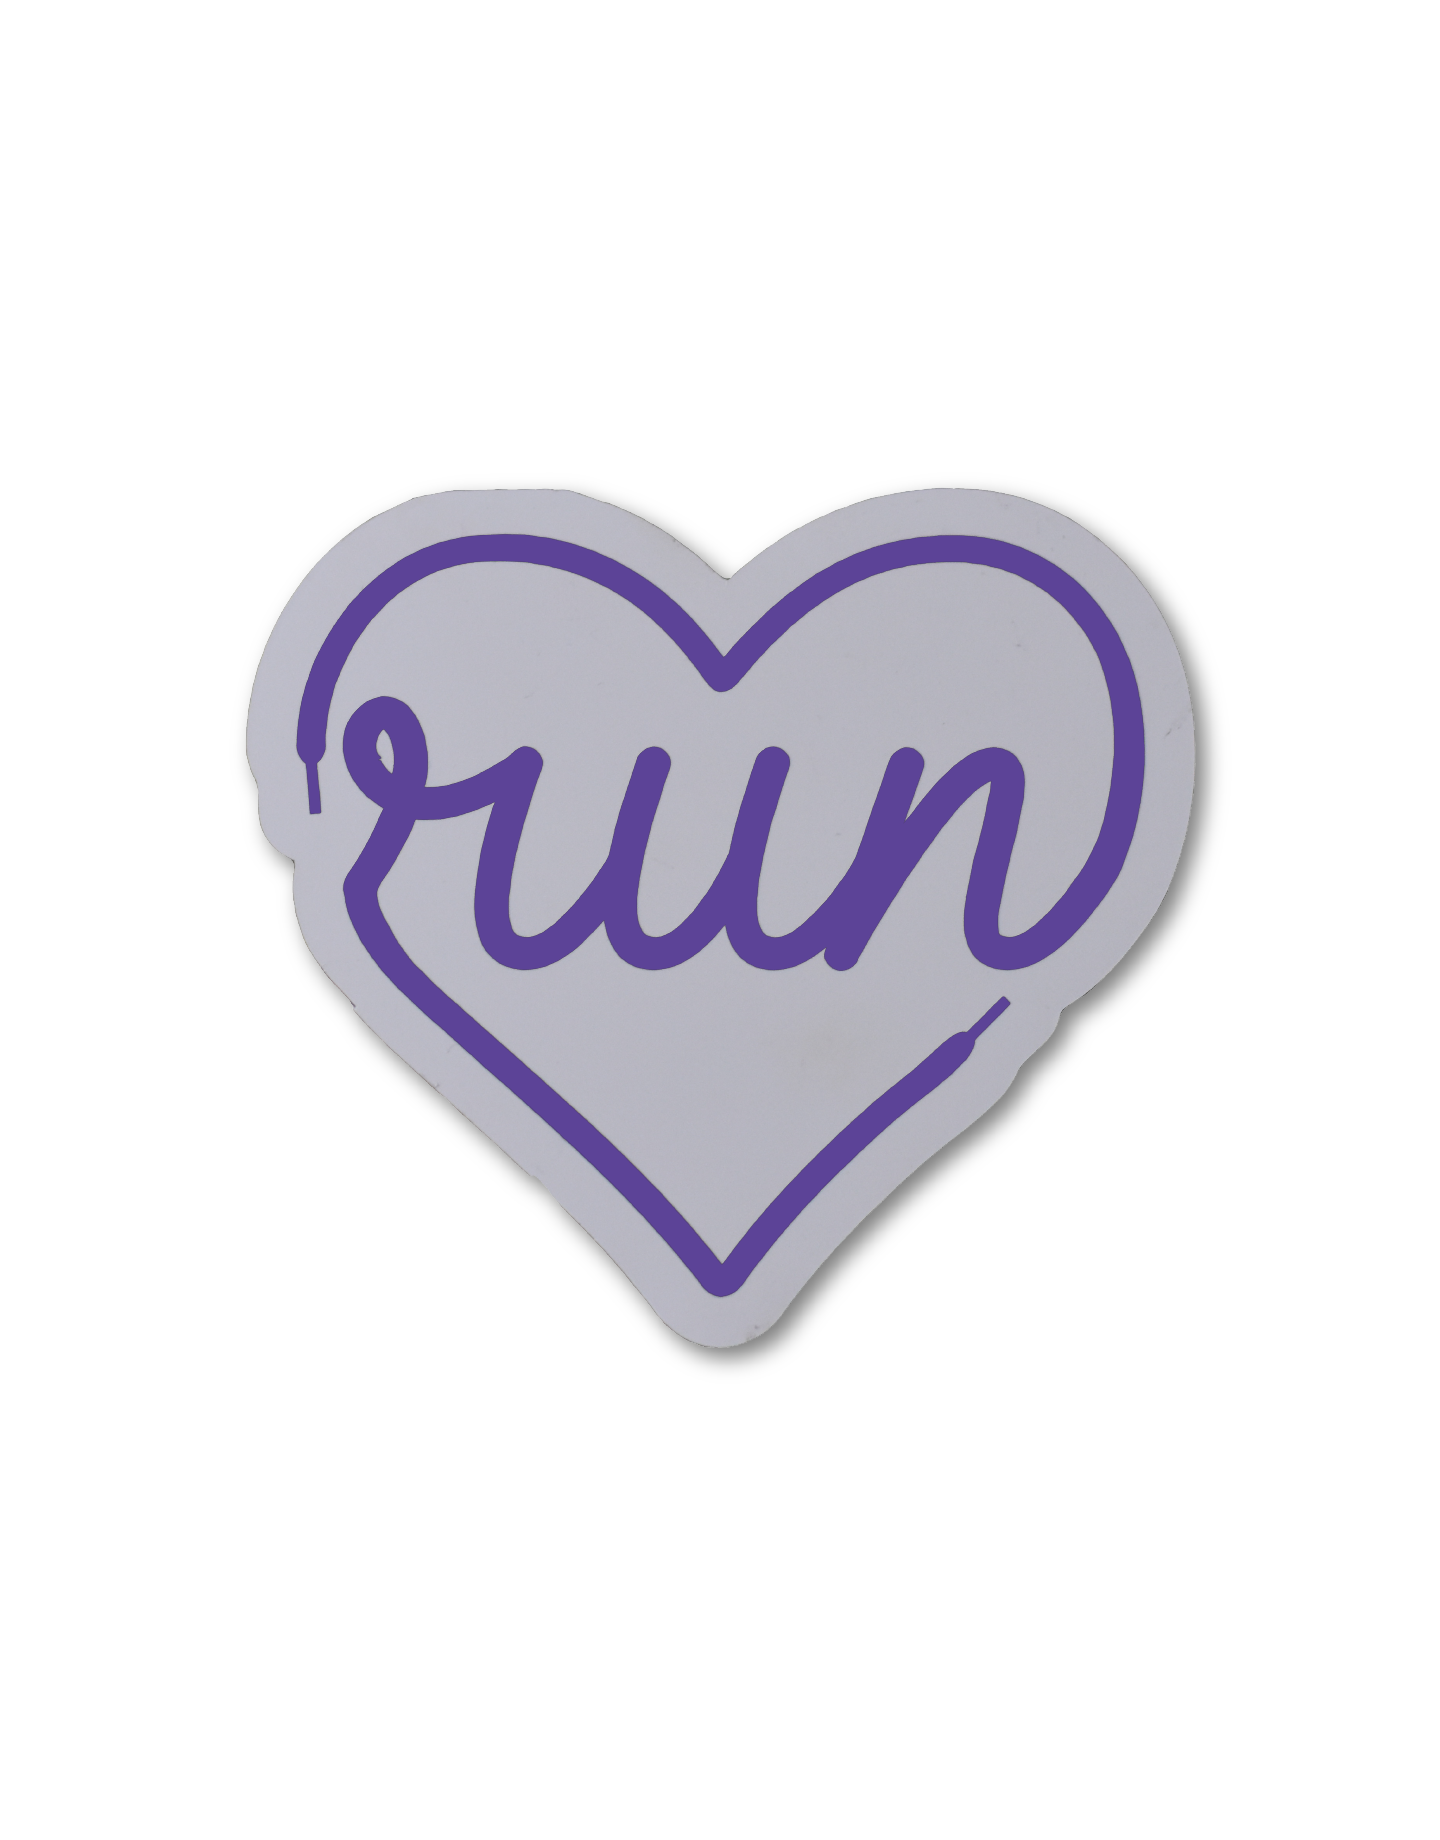 Mad Dash Creations Run Heart Laces Magnet